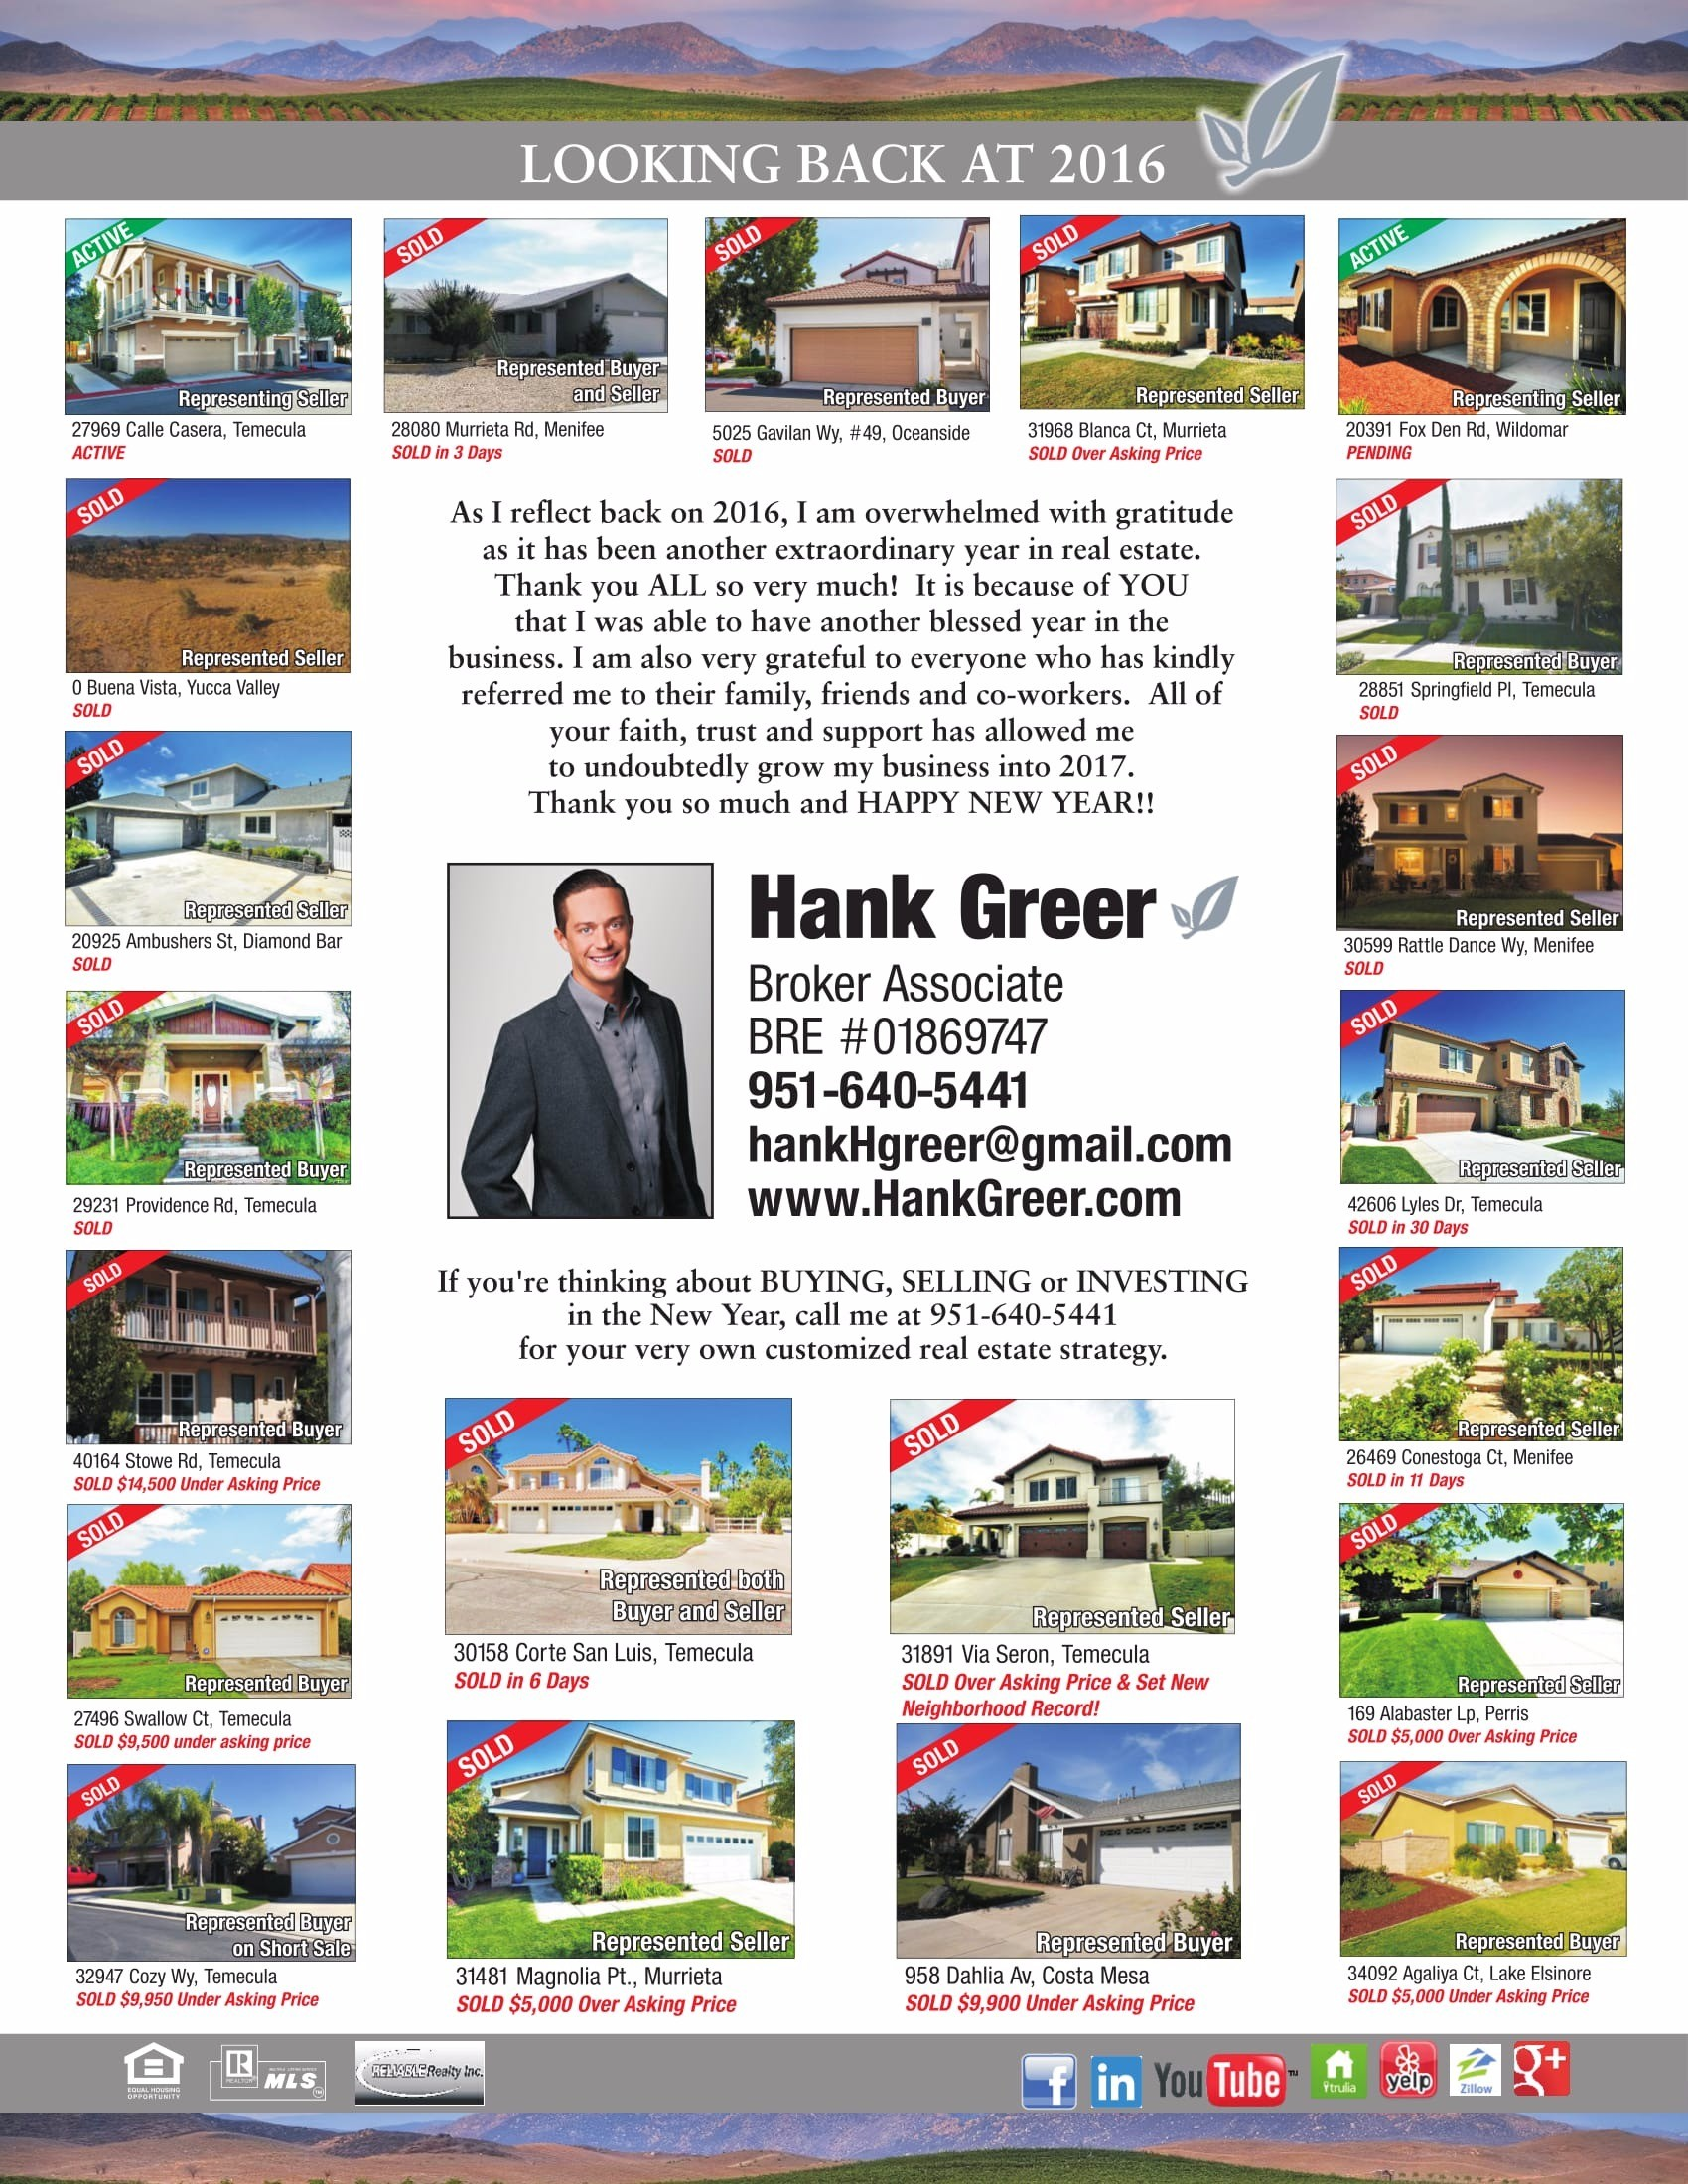 All sold homes by Hank Greer in 2016 in and around the Temecula California area.